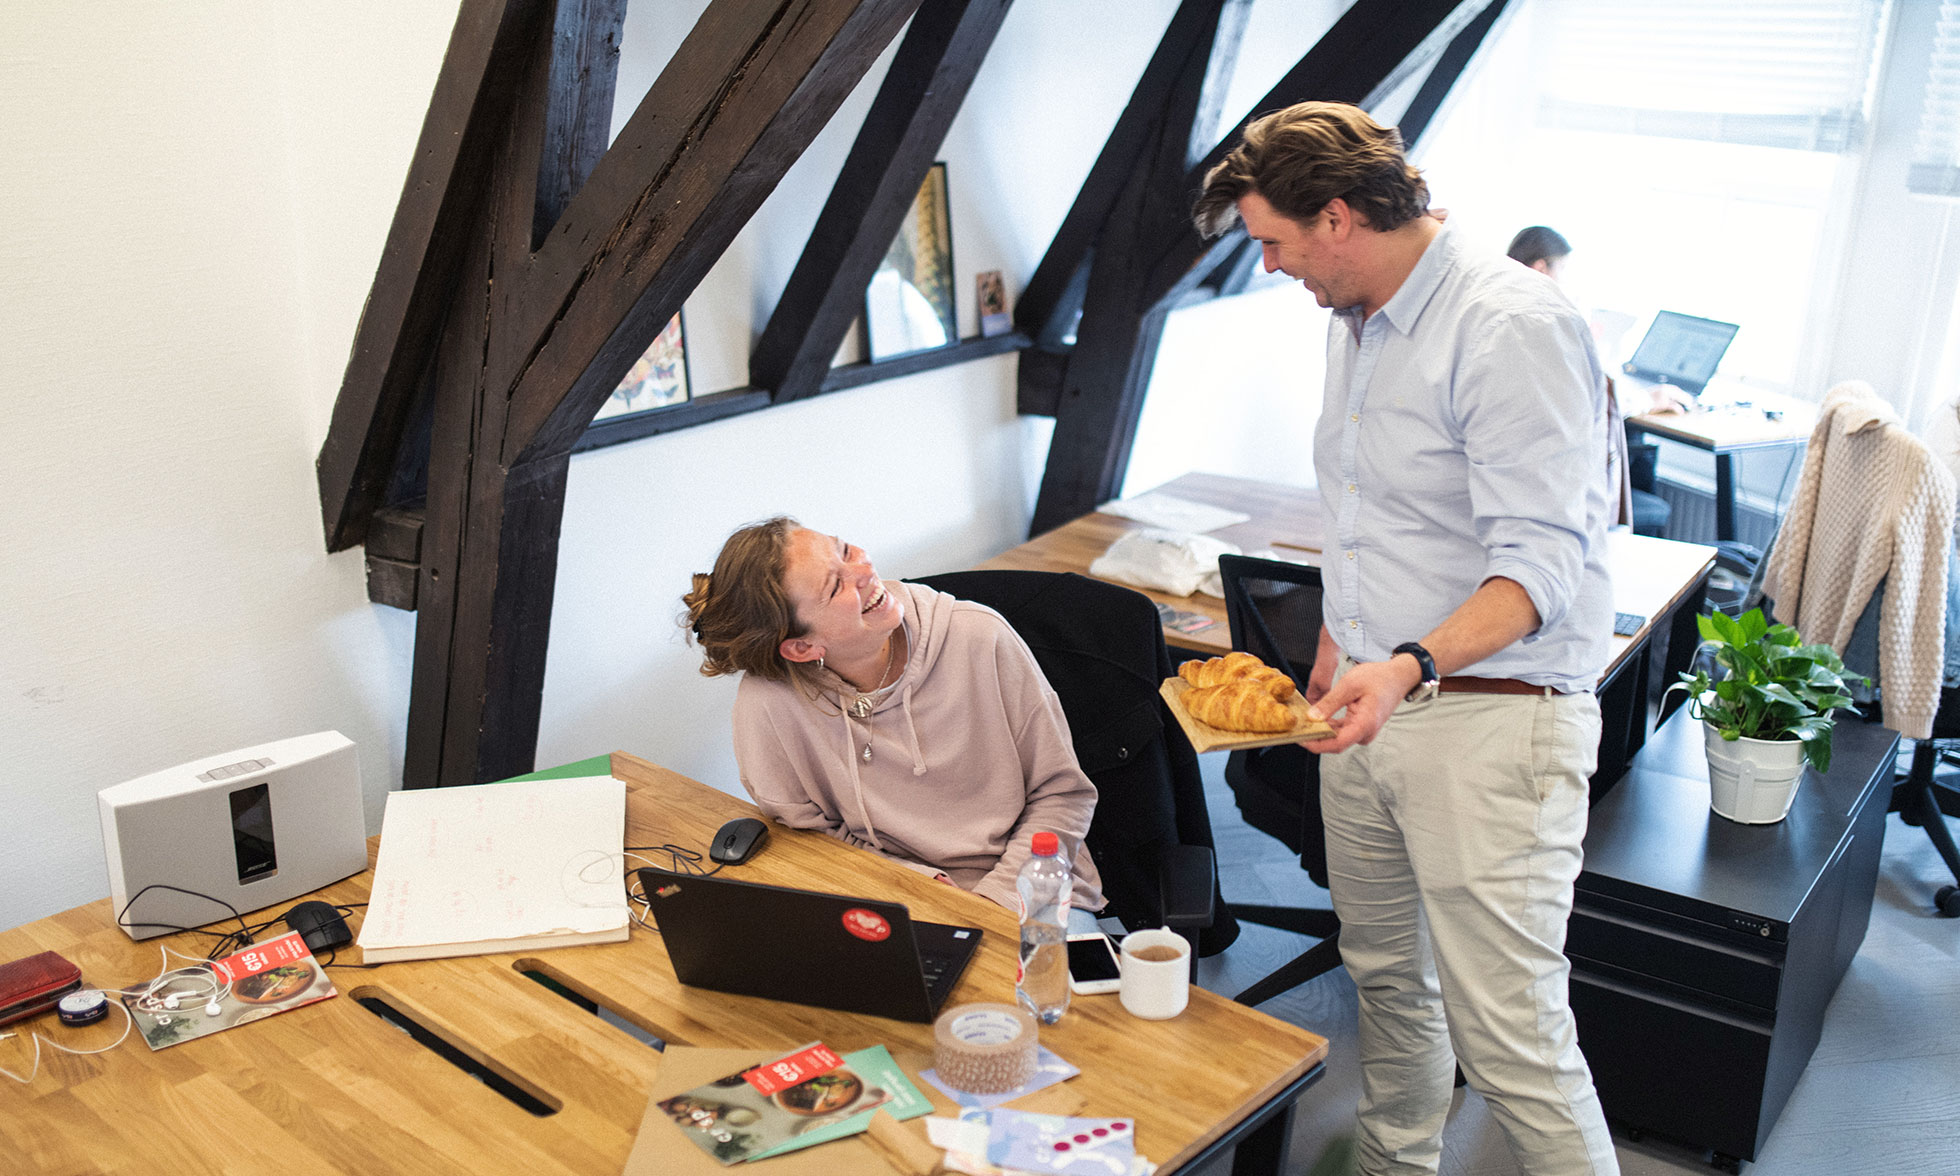 Crisp CFO Michiel Roodenburg and one of his colleagues laughing in their office